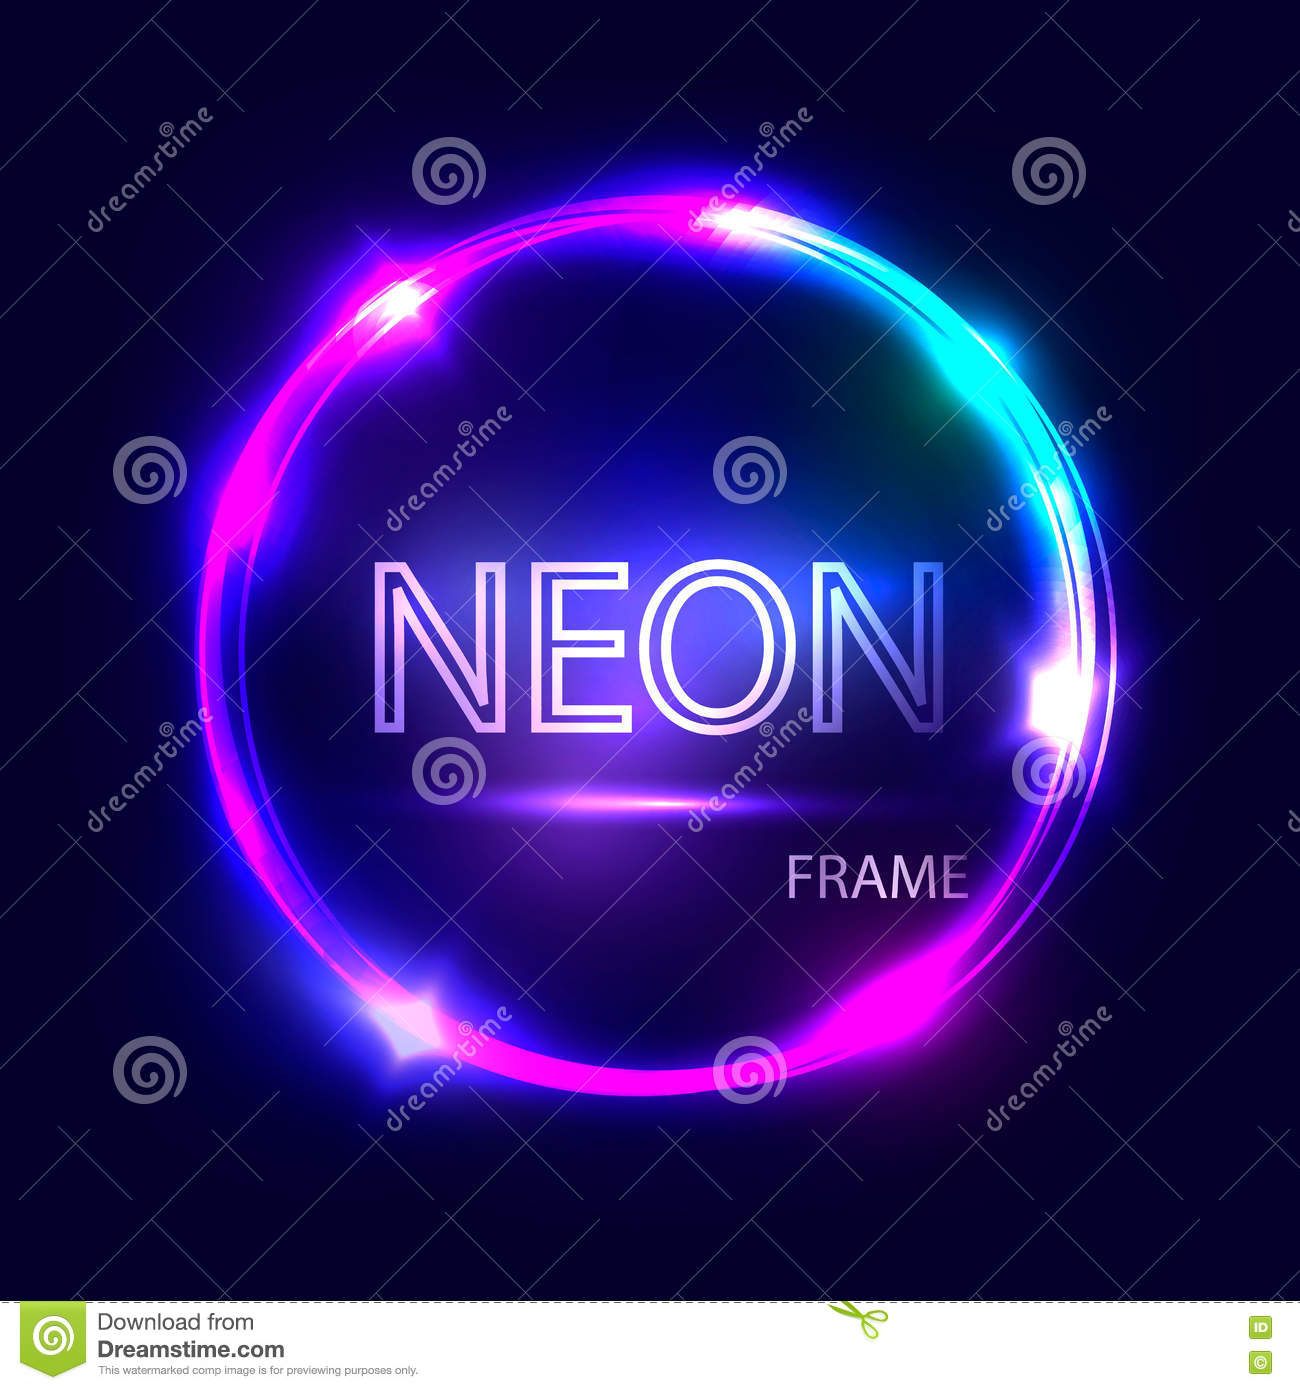 Neon round glowing frame. Electric circle on dark background. Light banner with glow.